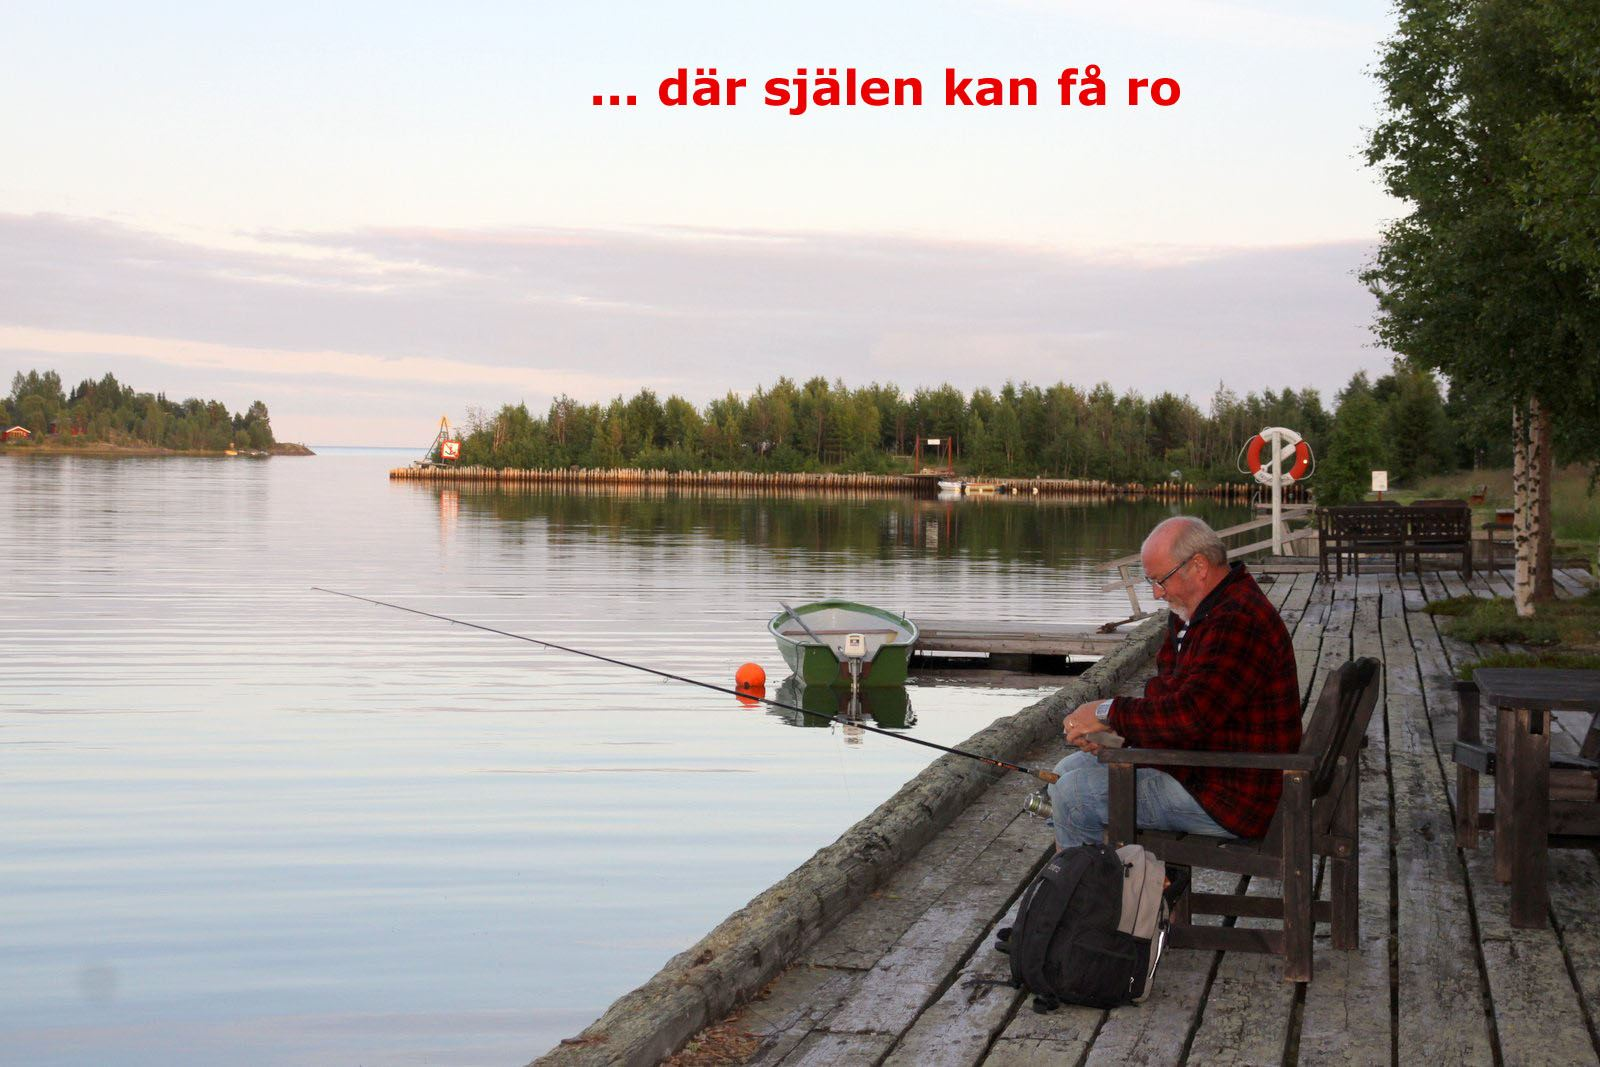 Staffan Stenlund, Camping am Meer – Sikeå Havscamping